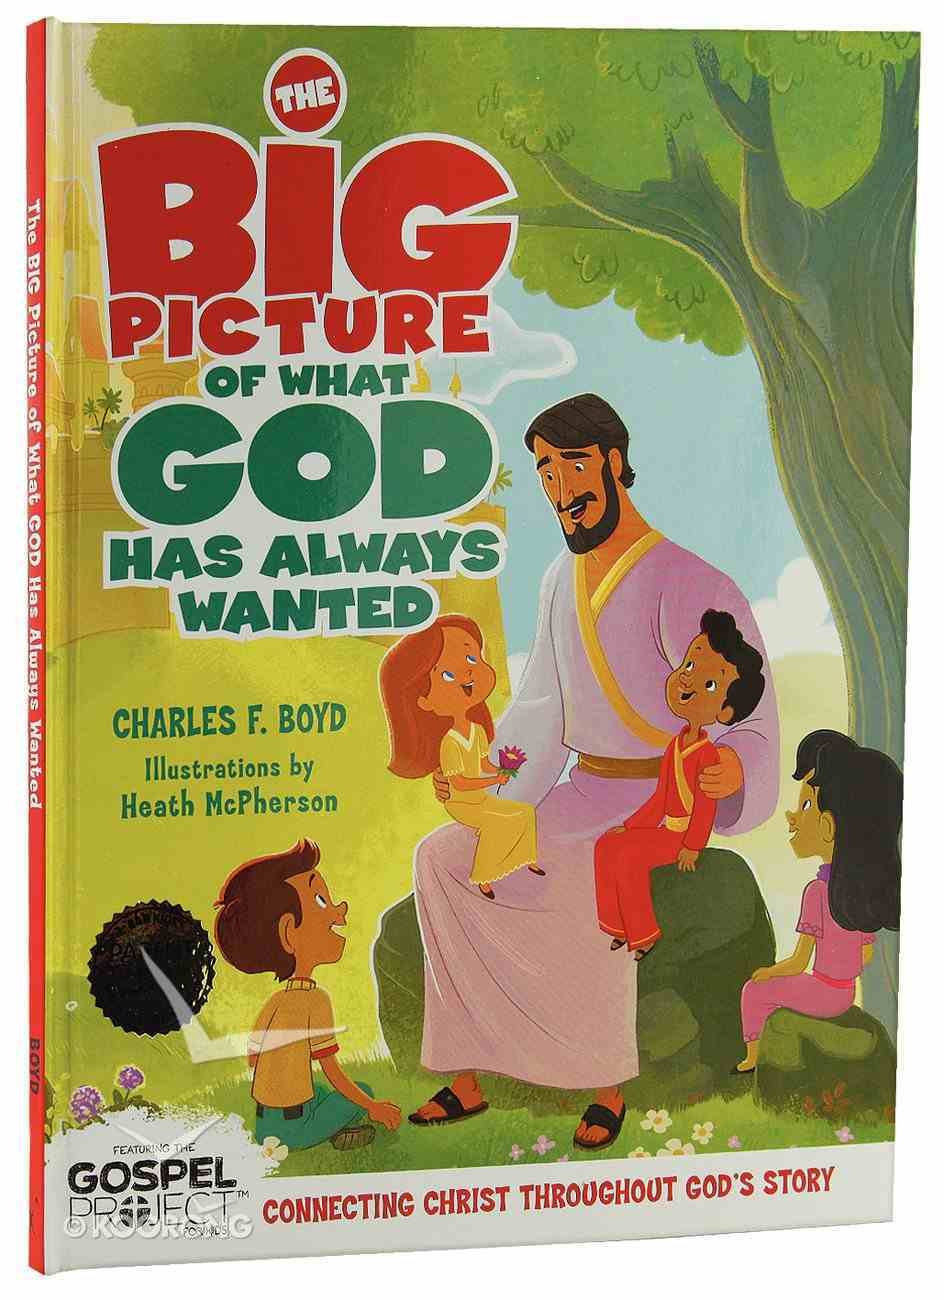 The Big Picture of What God Always Wanted Hardback